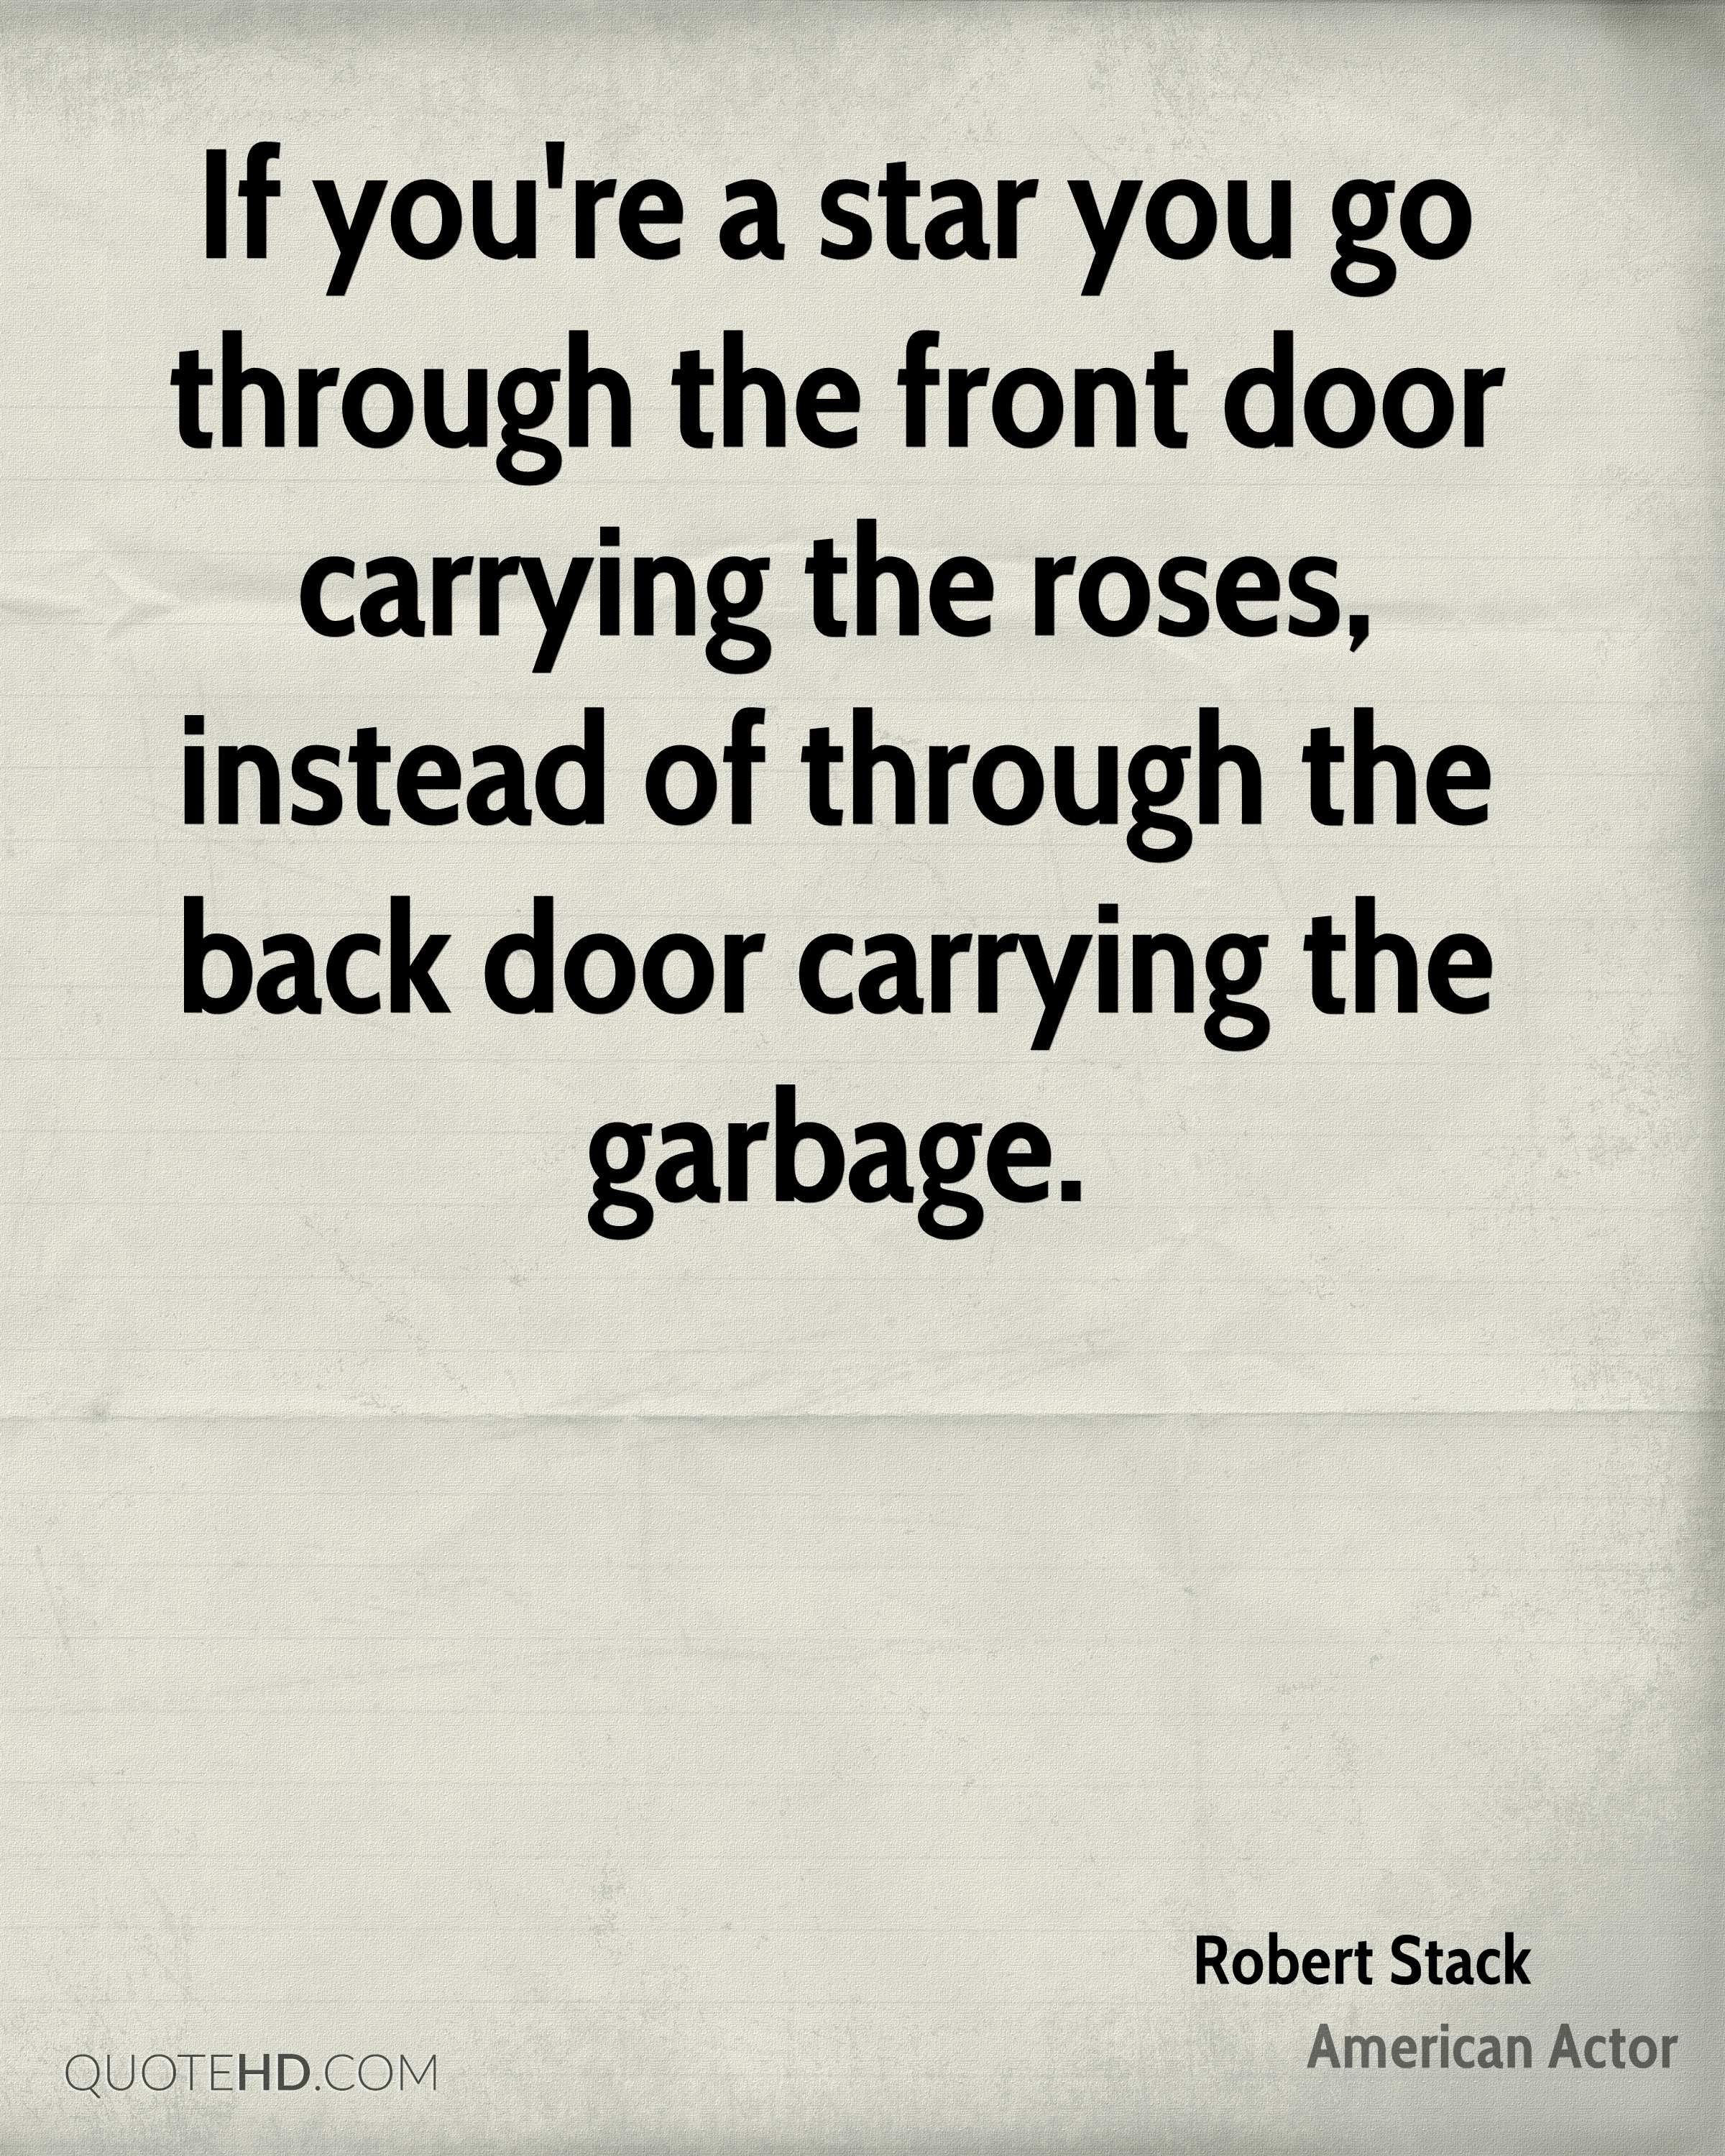 If you're a star you go through the front door carrying the roses, instead of through the back door carrying the garbage.